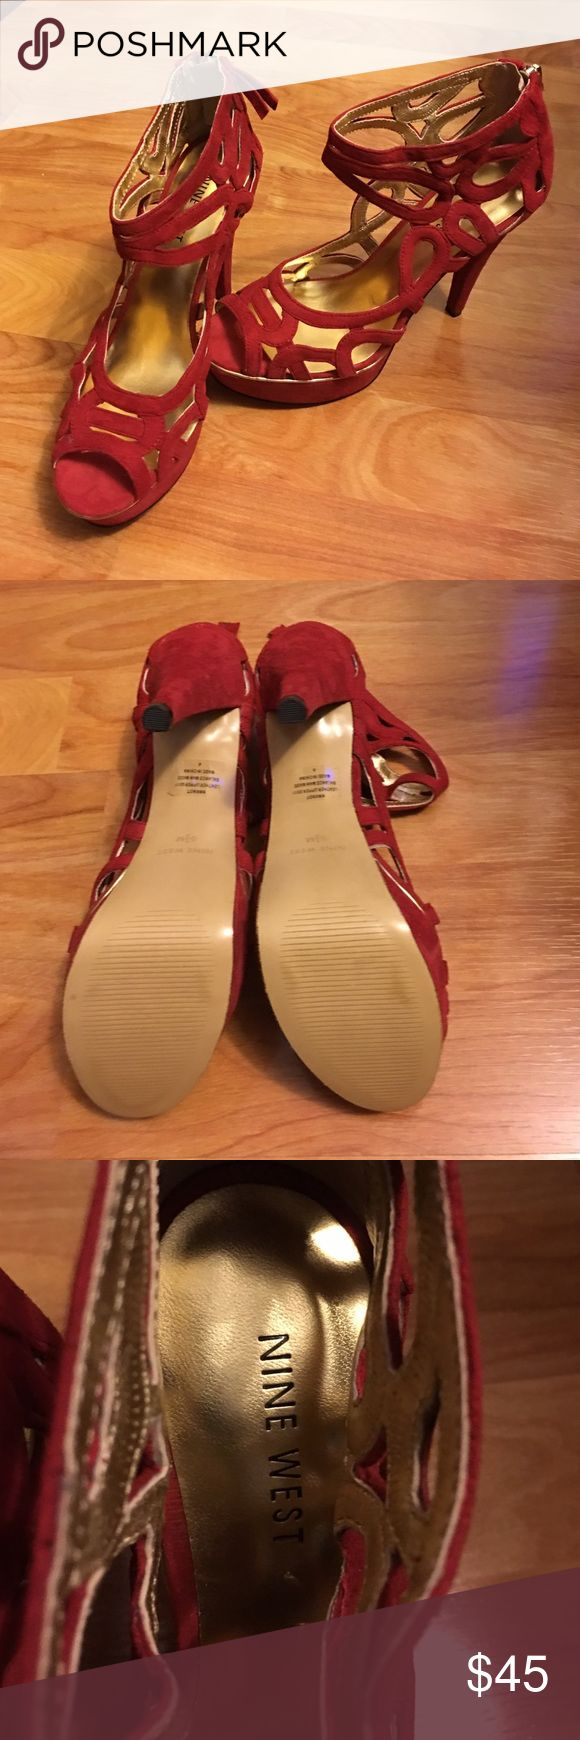 Nine West red platform heels Beautiful and sexy red platform heels!  Brand new but no box. It's a tiny bit big for me. Thought I might still wear it but never did except for trying on and walking around the house. Nine West Shoes Heels